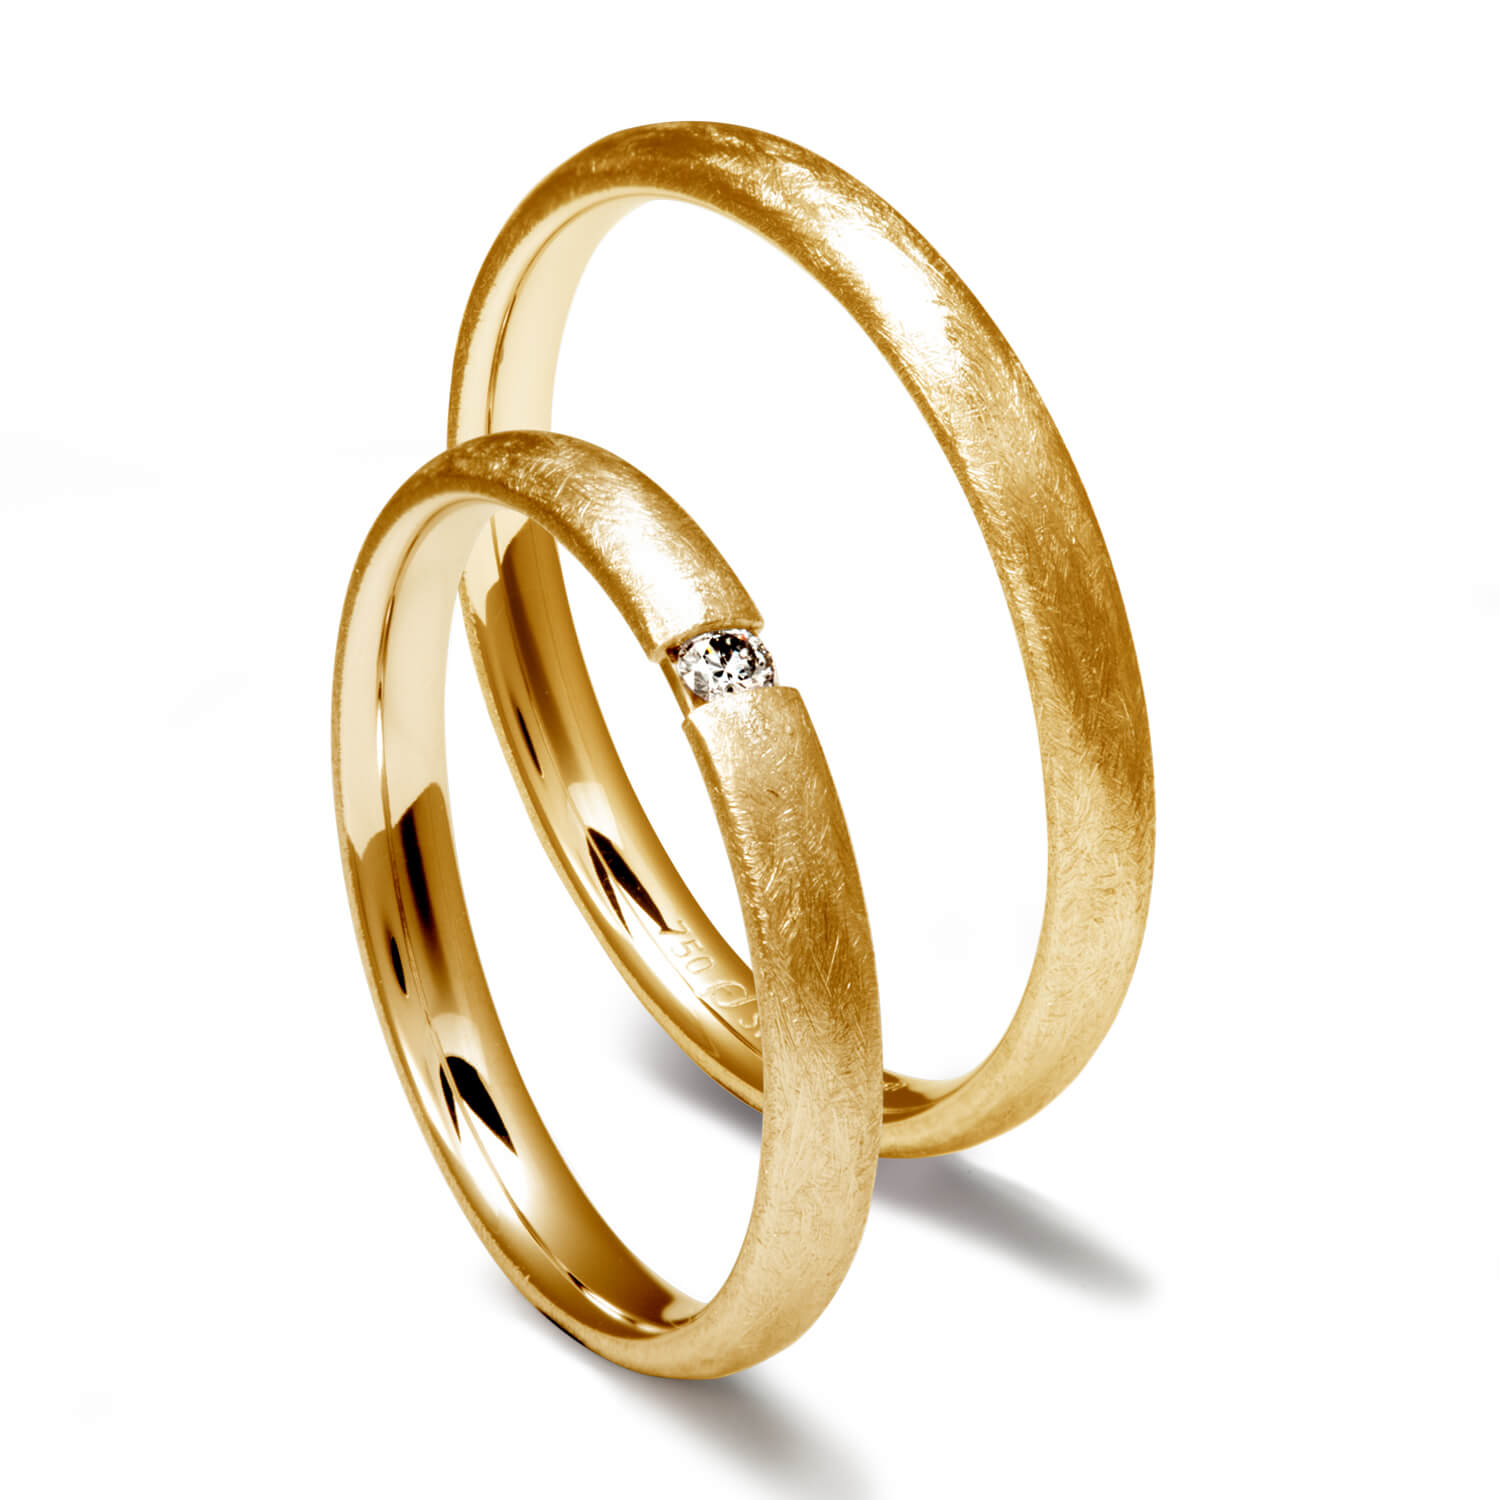 wedding rings, wedding bands, rings, jewelry, jewellery, gold, platinum, carbon, precious